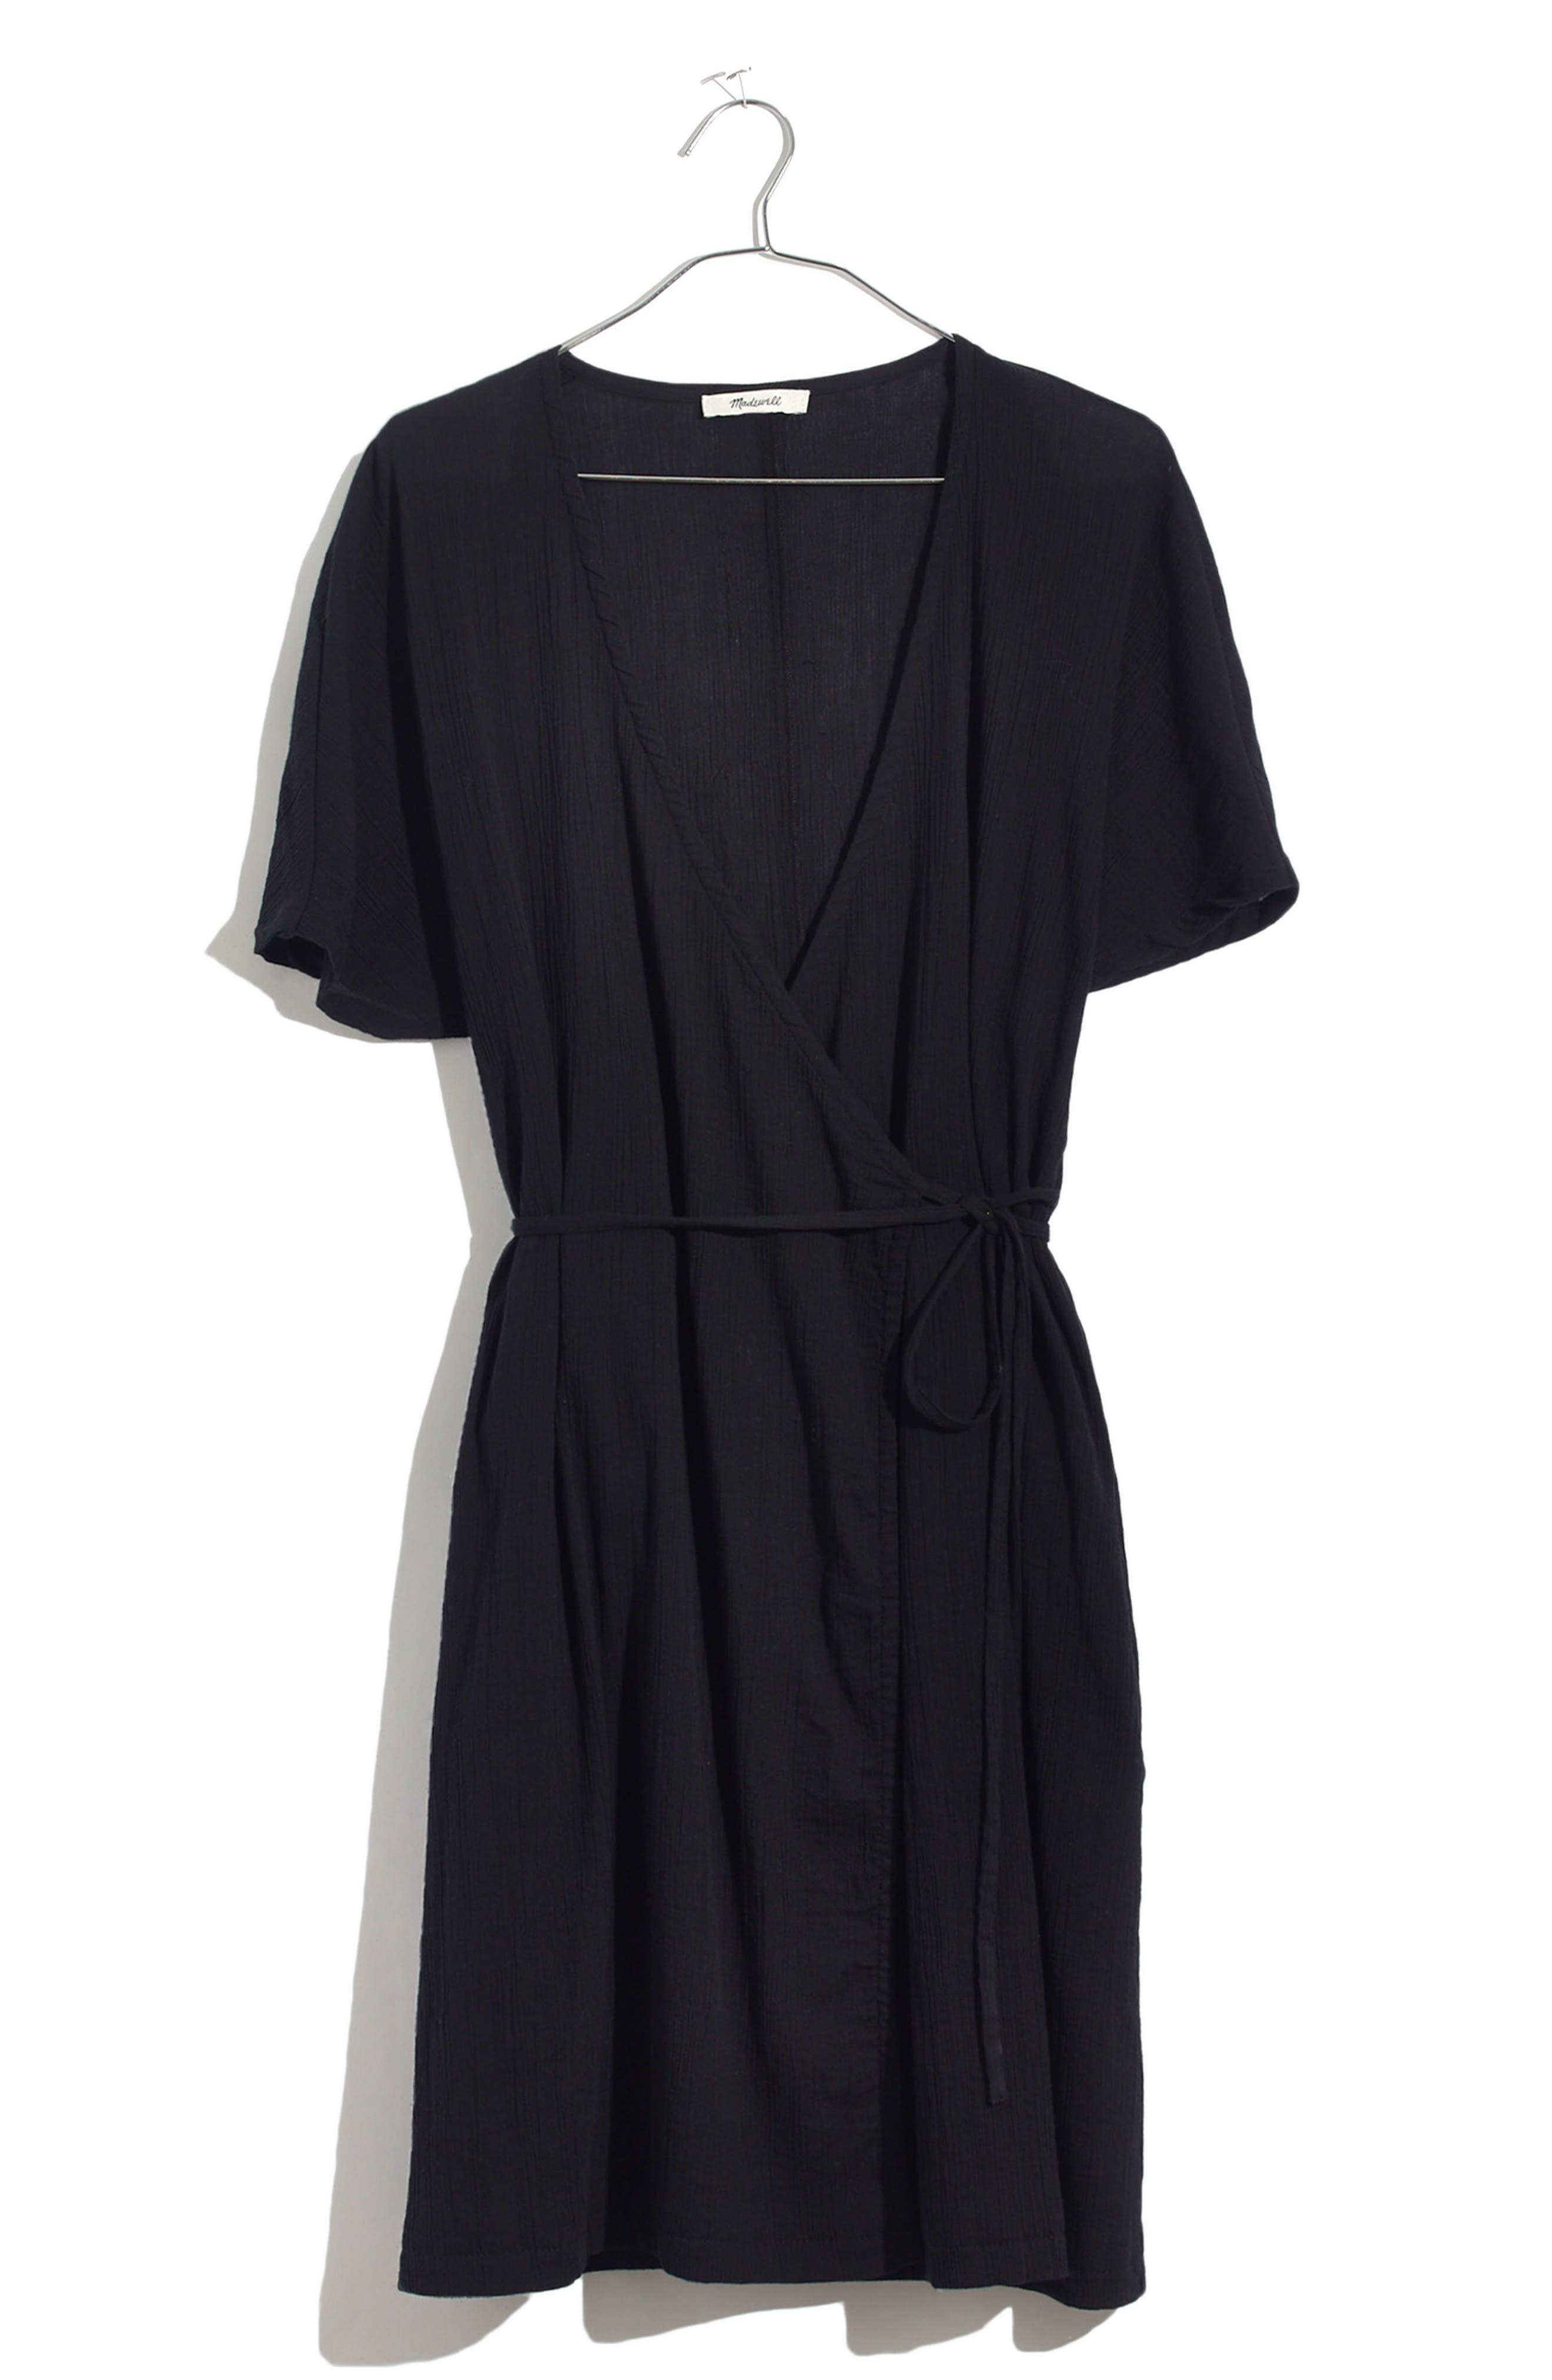 MADEWELL,                             Gauze Wrap Dress,                             Alternate thumbnail 3, color,                             001